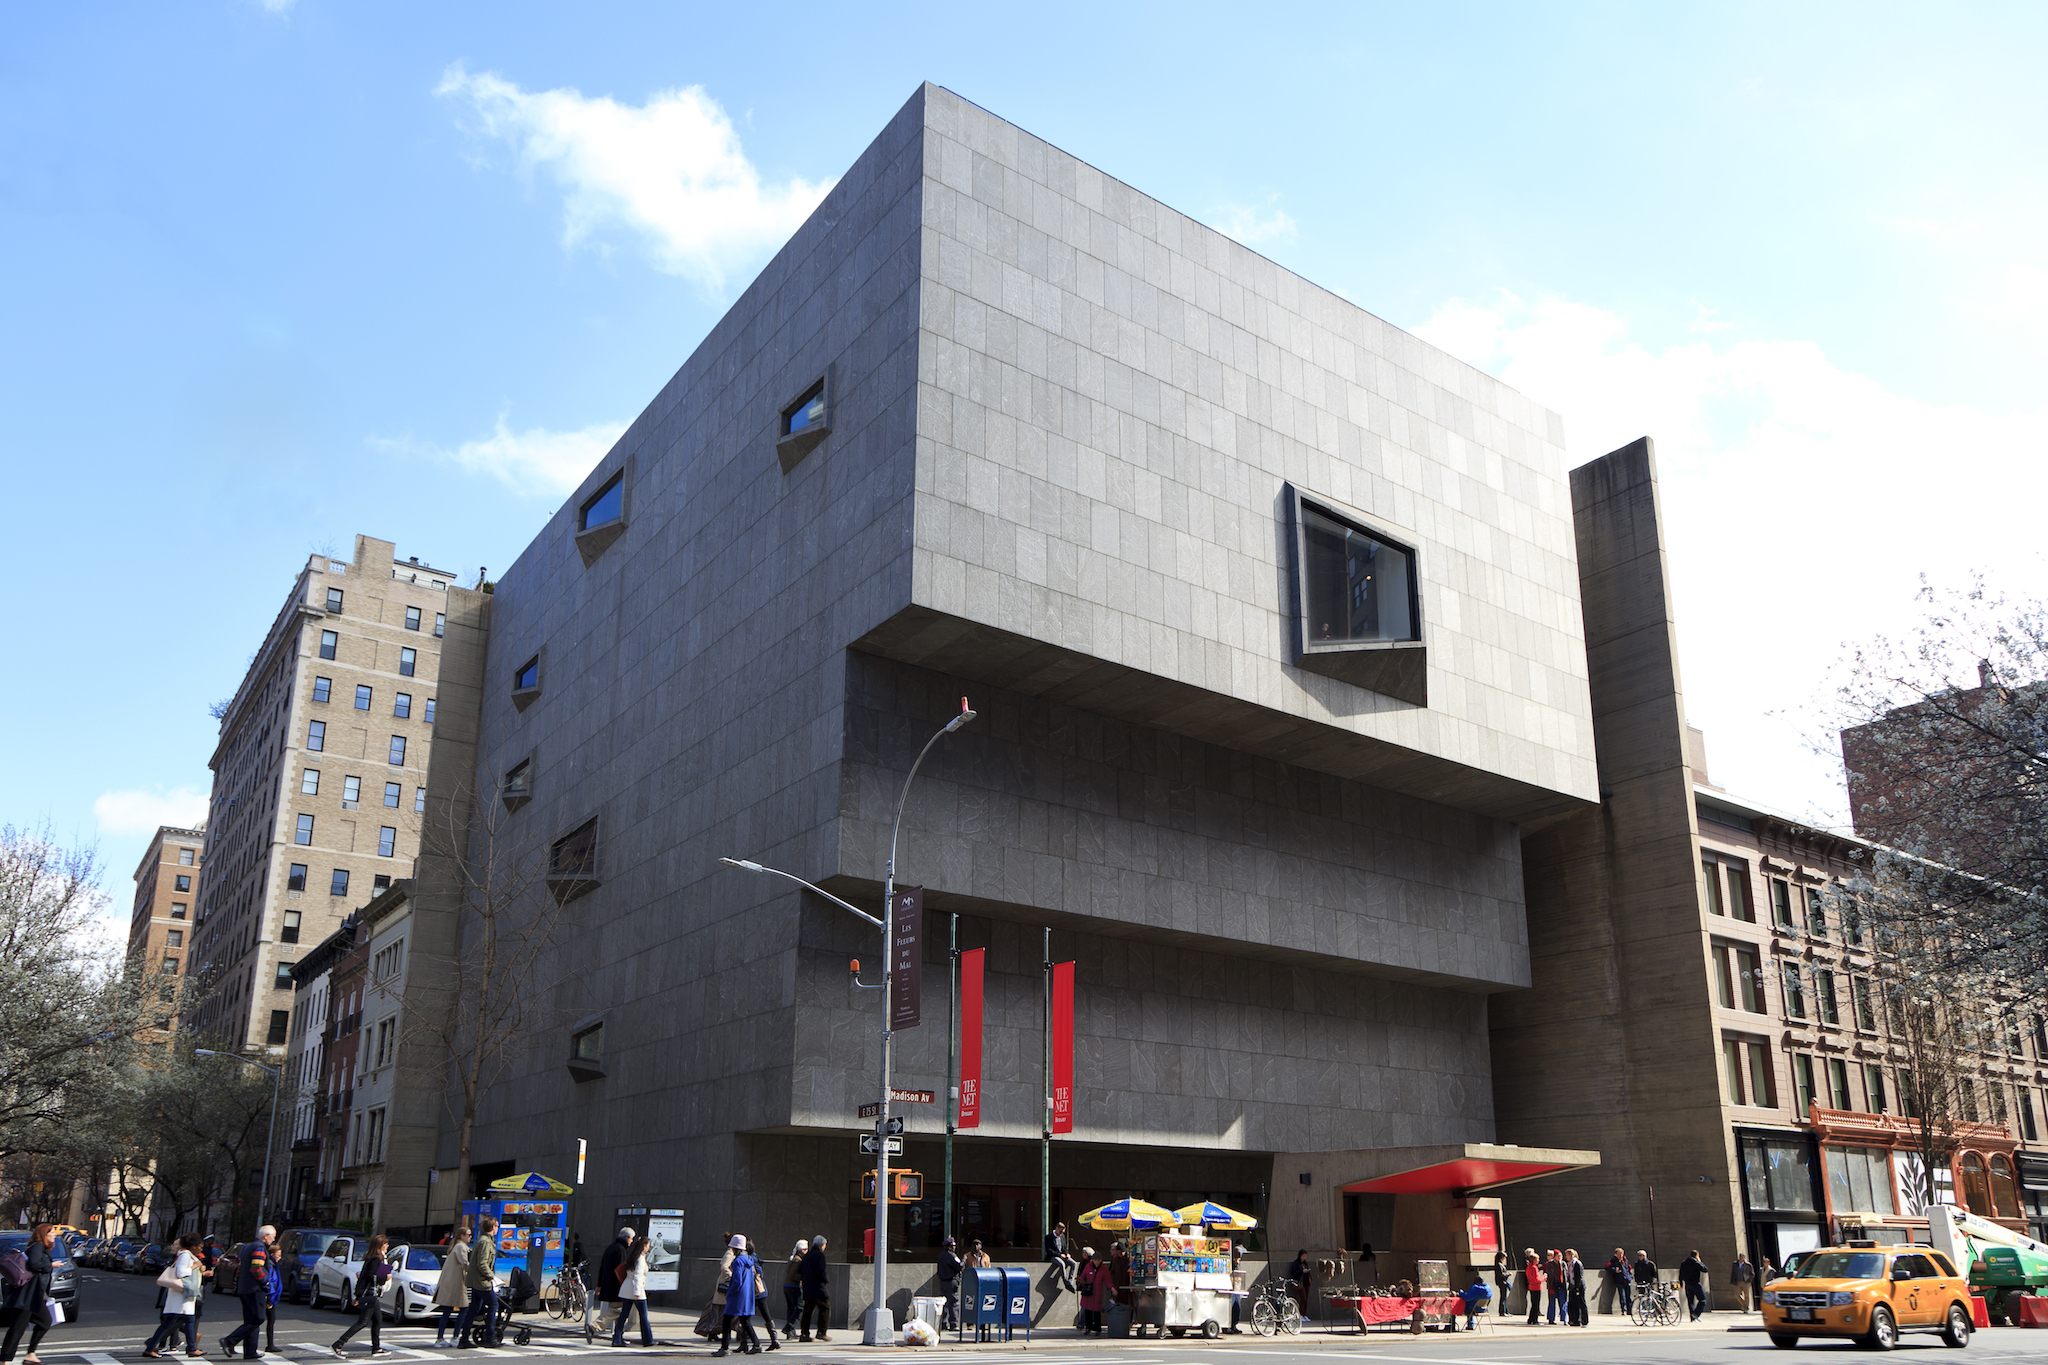 The Met Breuer is closing its doors for good